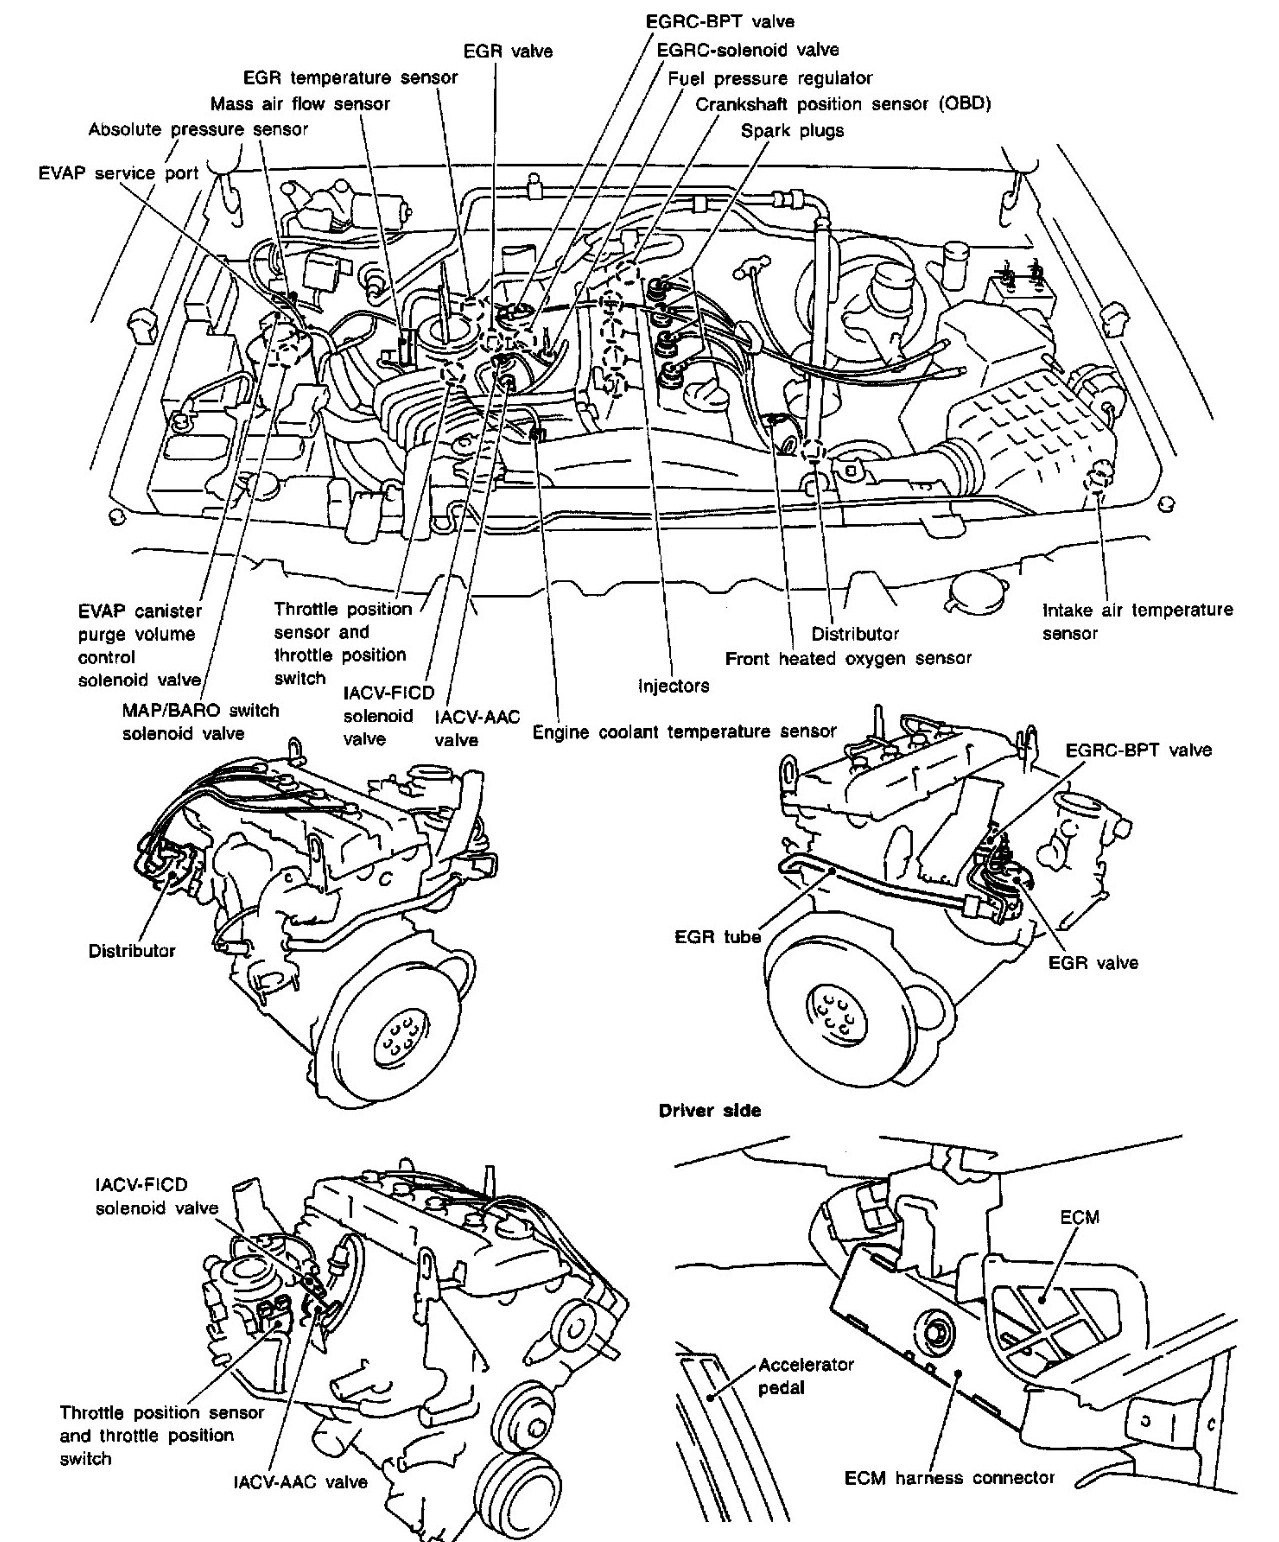 [DIAGRAM] Nissan Frontier Manual Transmission Diagram FULL